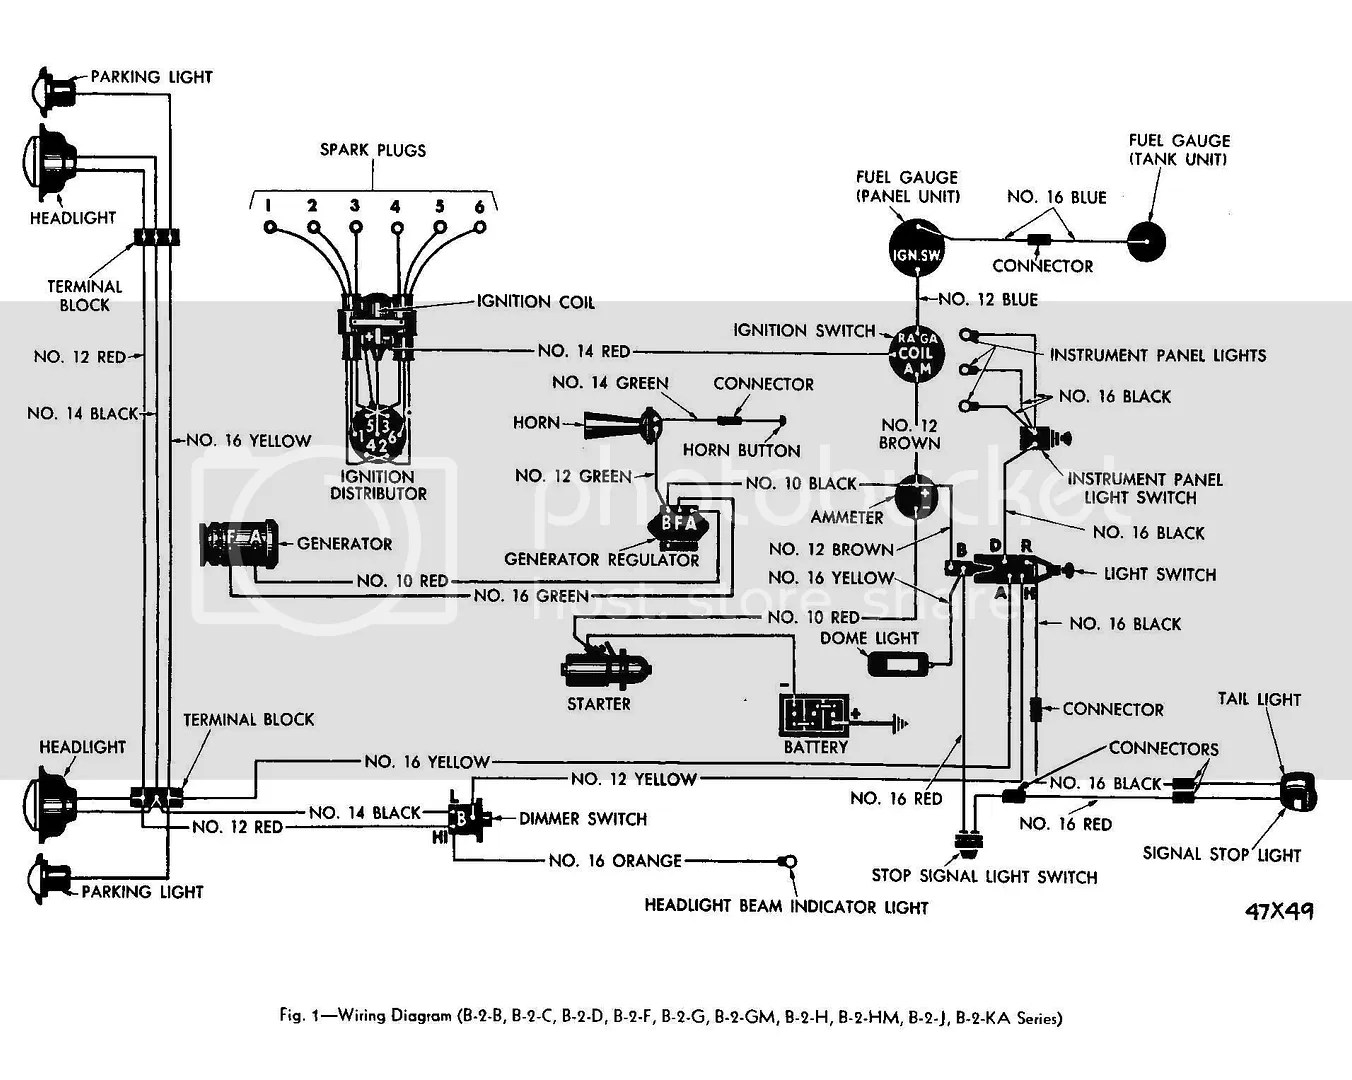 1951 Ford Truck Wiring Diagram 12 Or 6 Volt